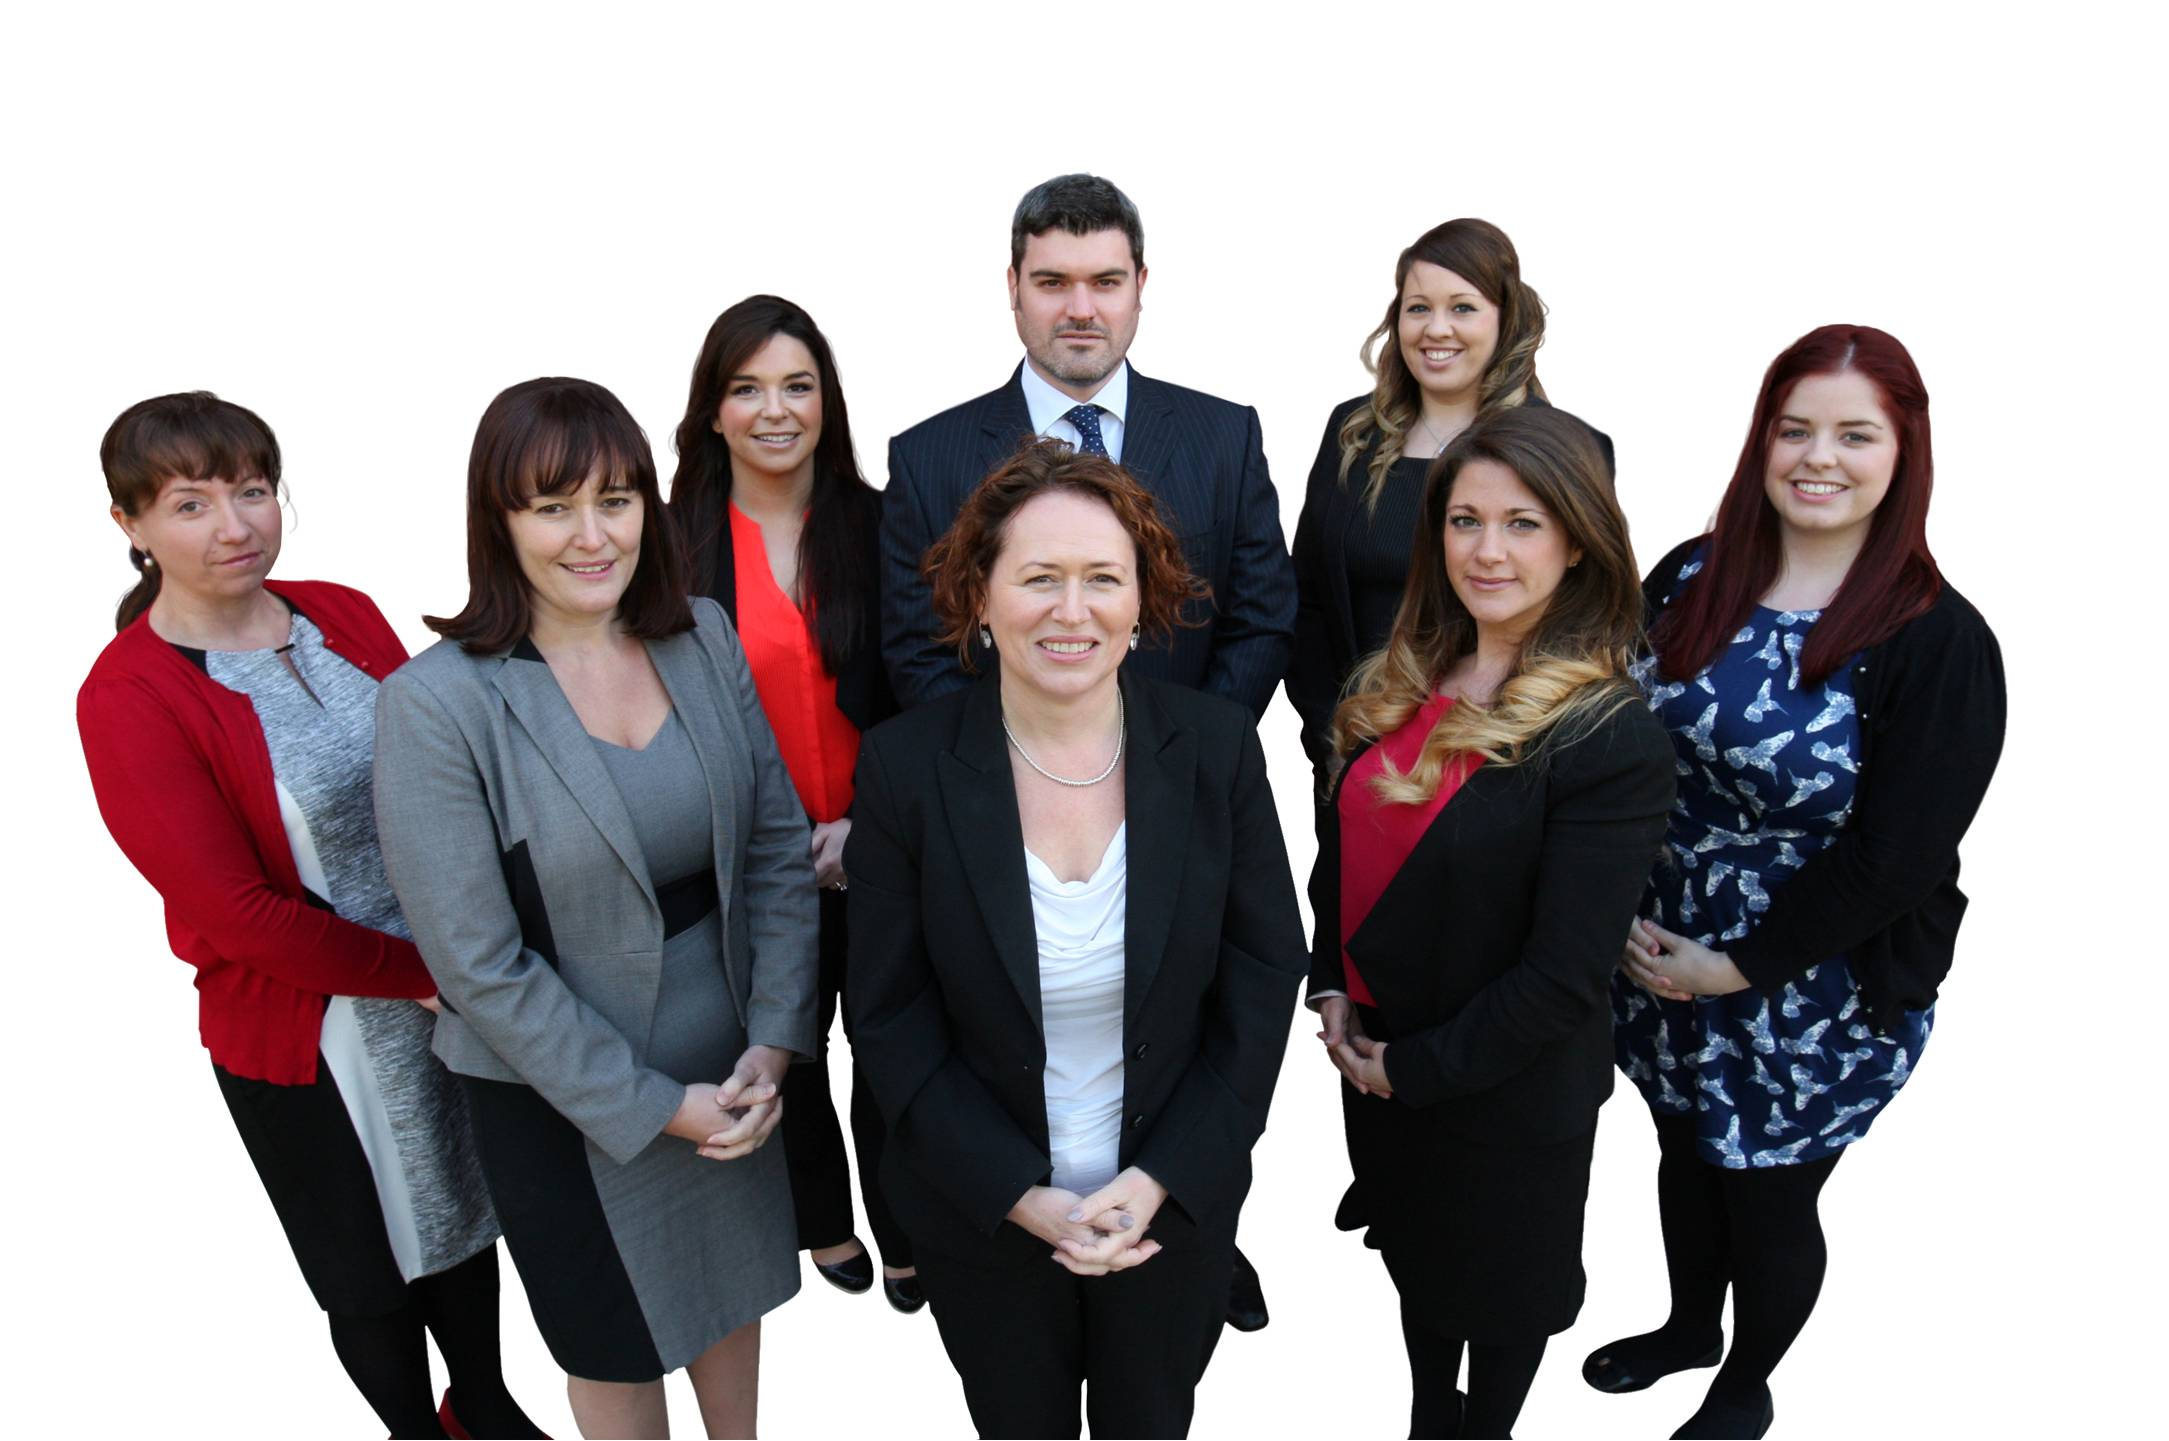 Our Liposuction expert team. We deal with medical negligence claims arising from Liposuction.